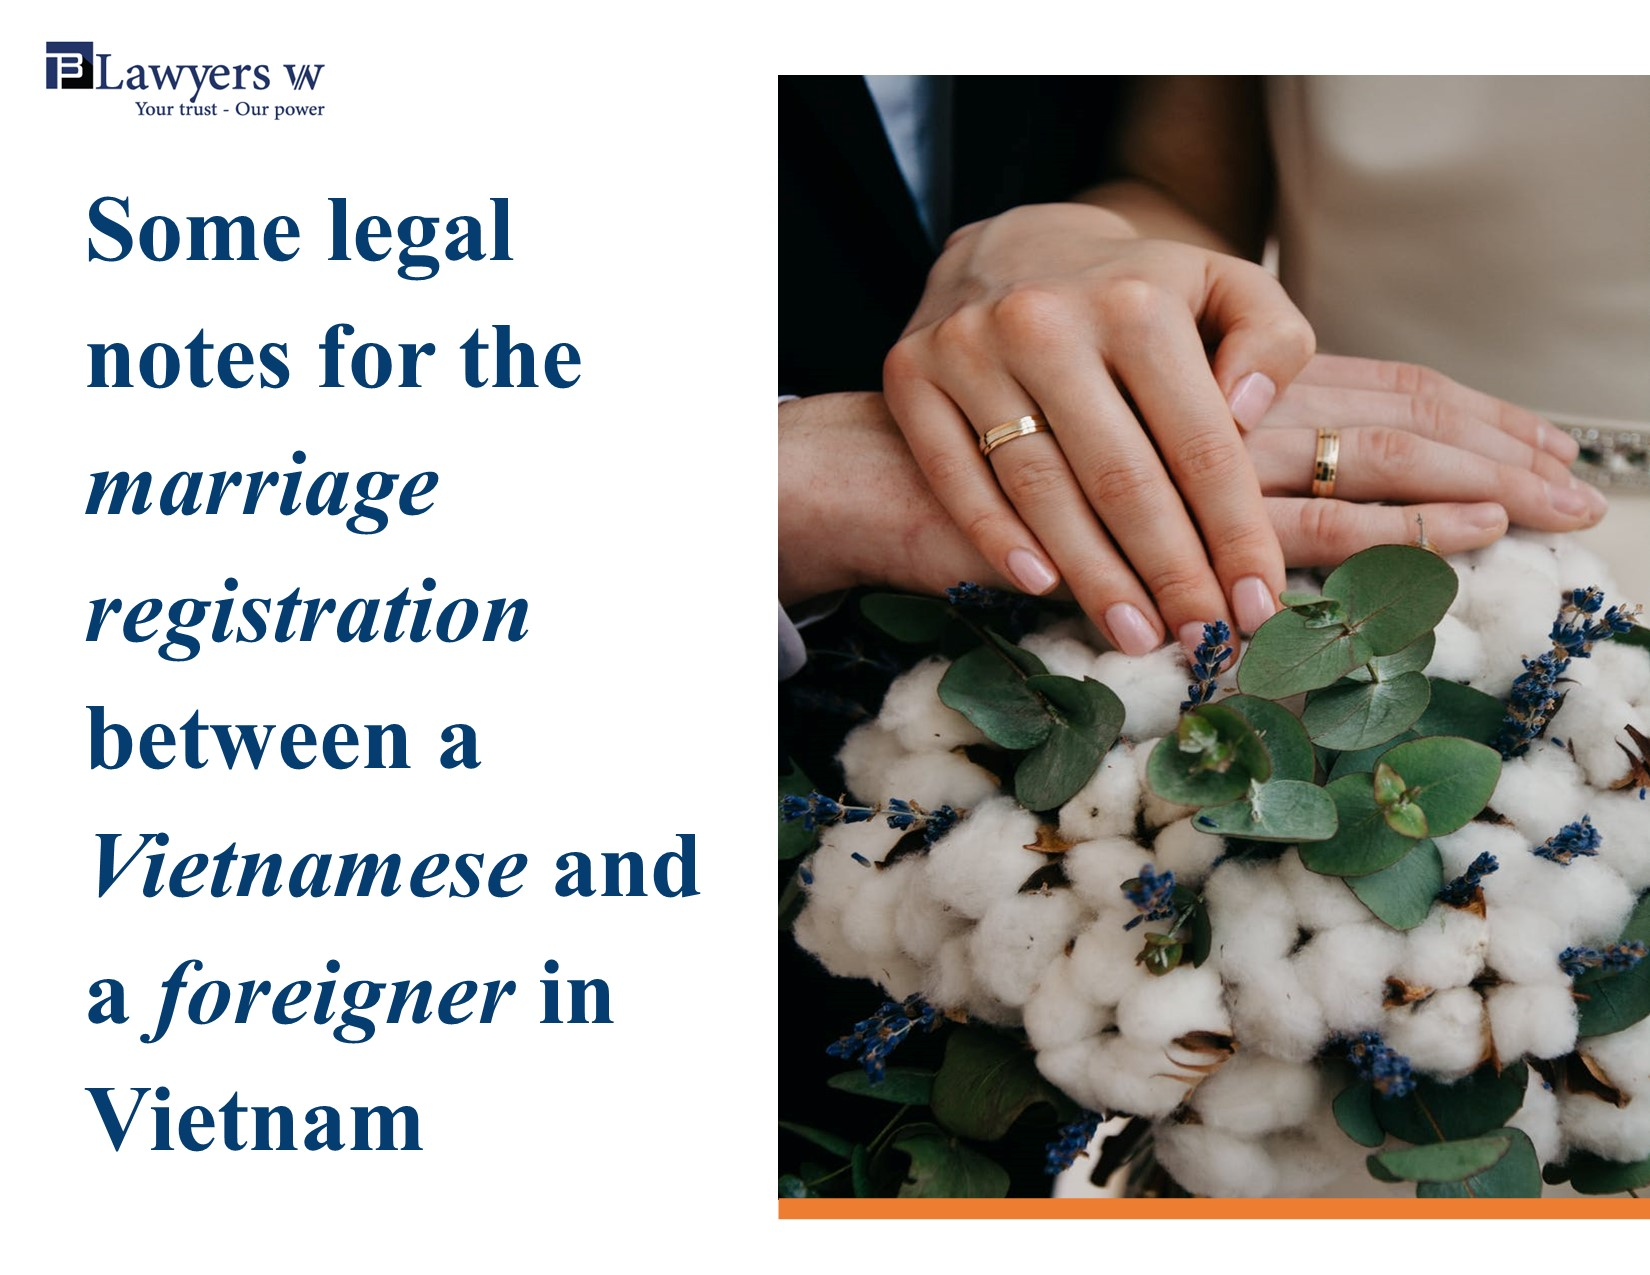 Notes for marriage registration between Vietnamese and foreigner